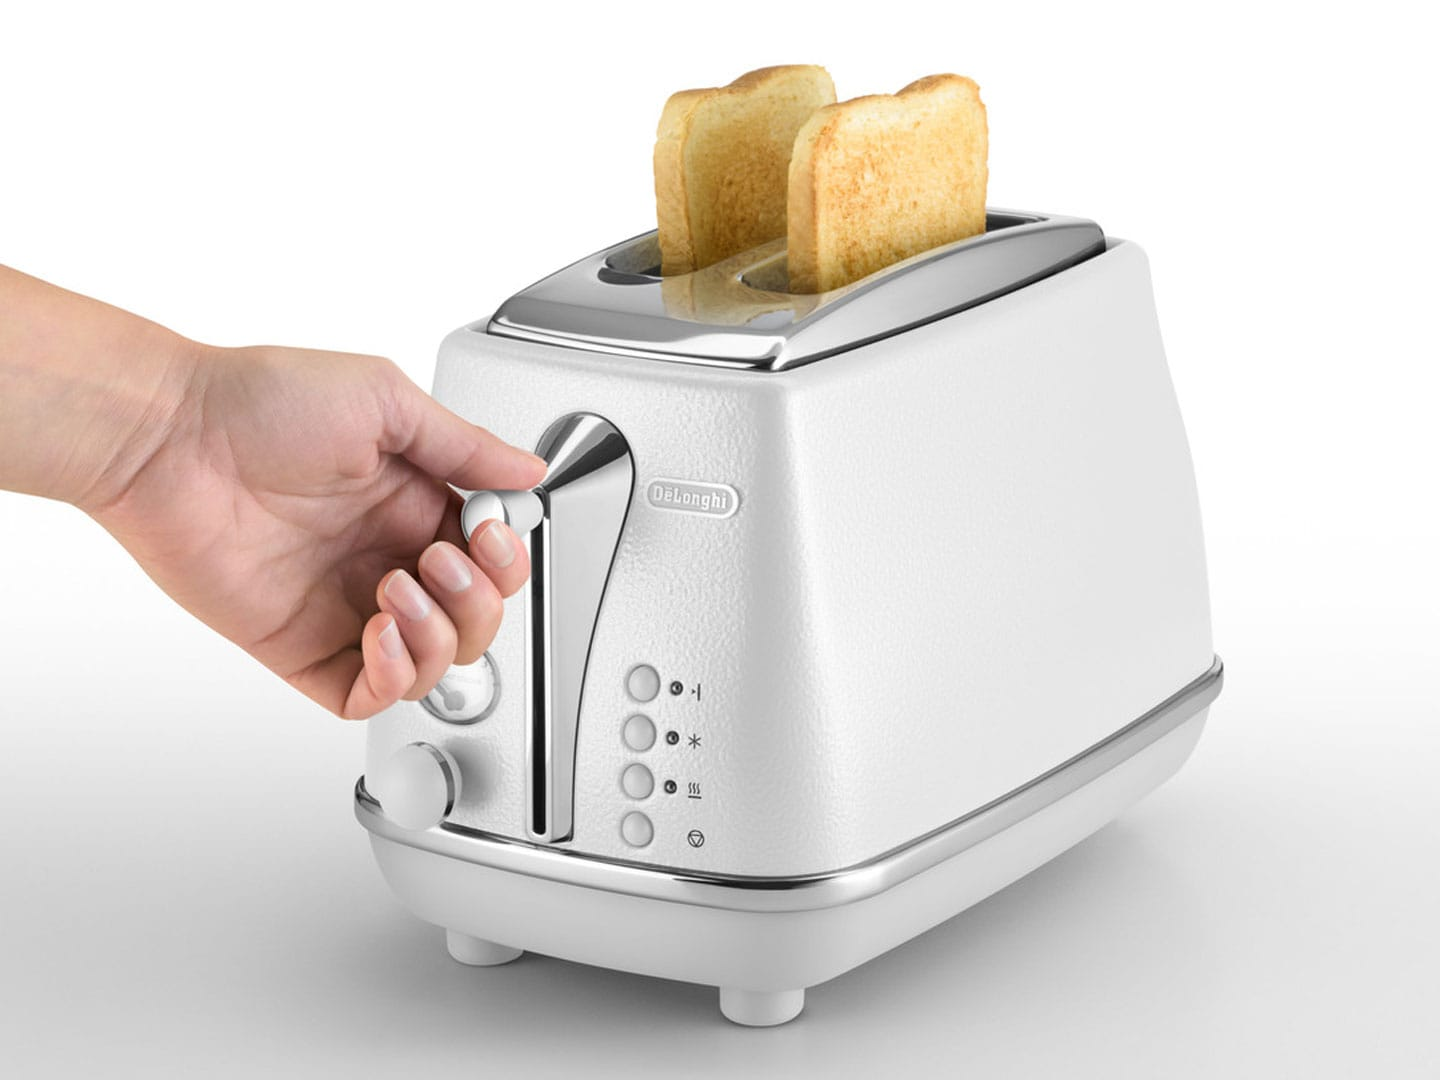 Icona Elements 2 Slice Toaster - Cloud White CTOE 2003.W